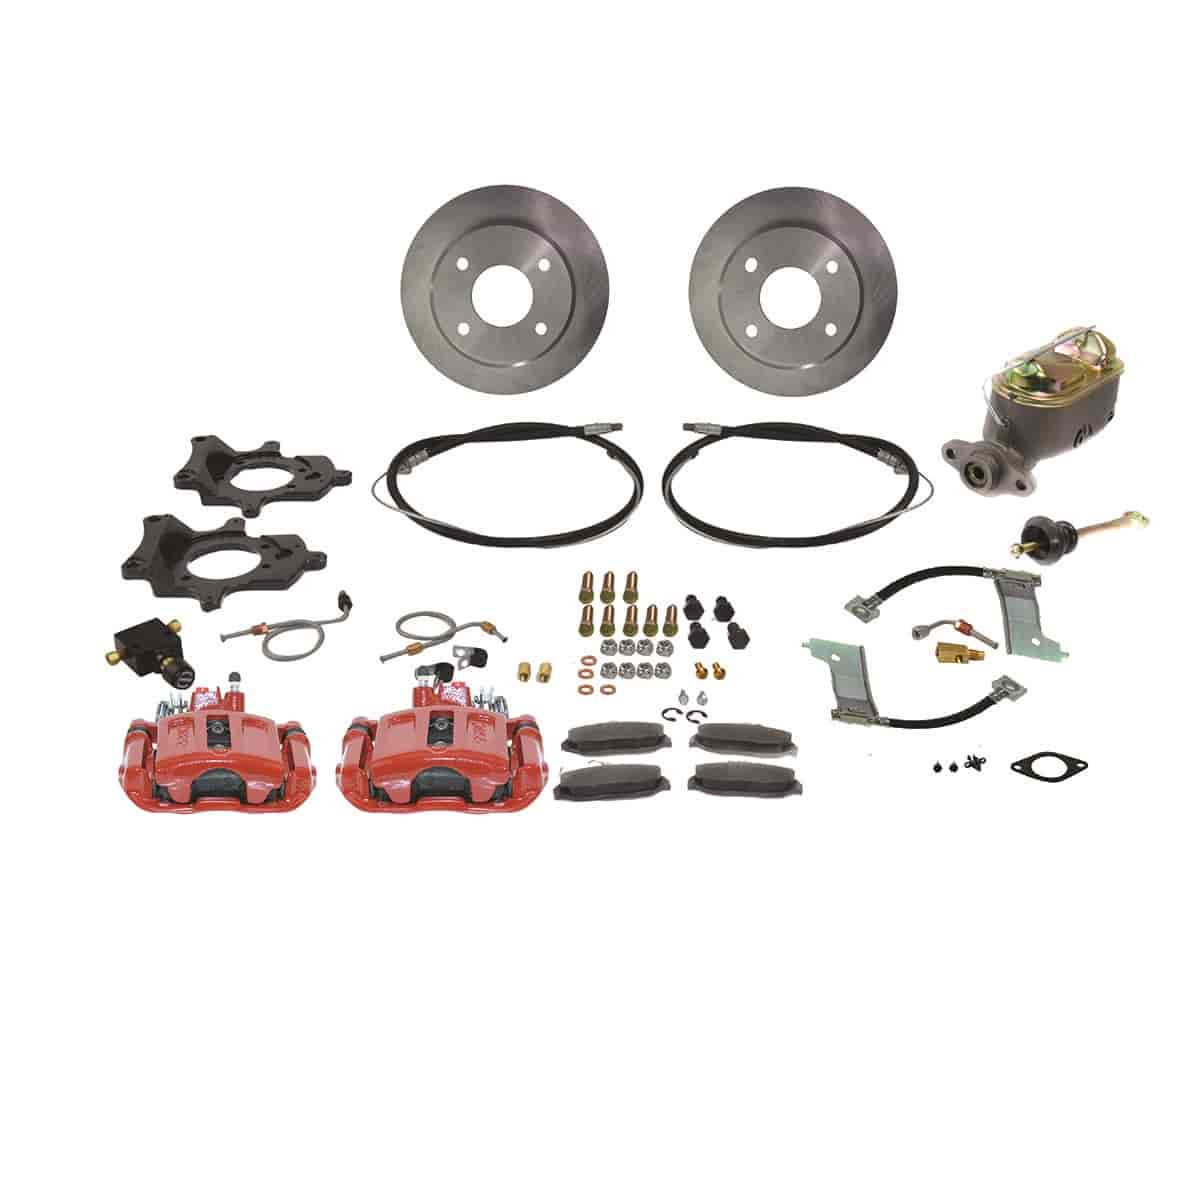 Stainless Steel Brakes A112-1R - Stainless Steel Brakes Single Piston Rear Drum to Disc Brake Conversion Kits